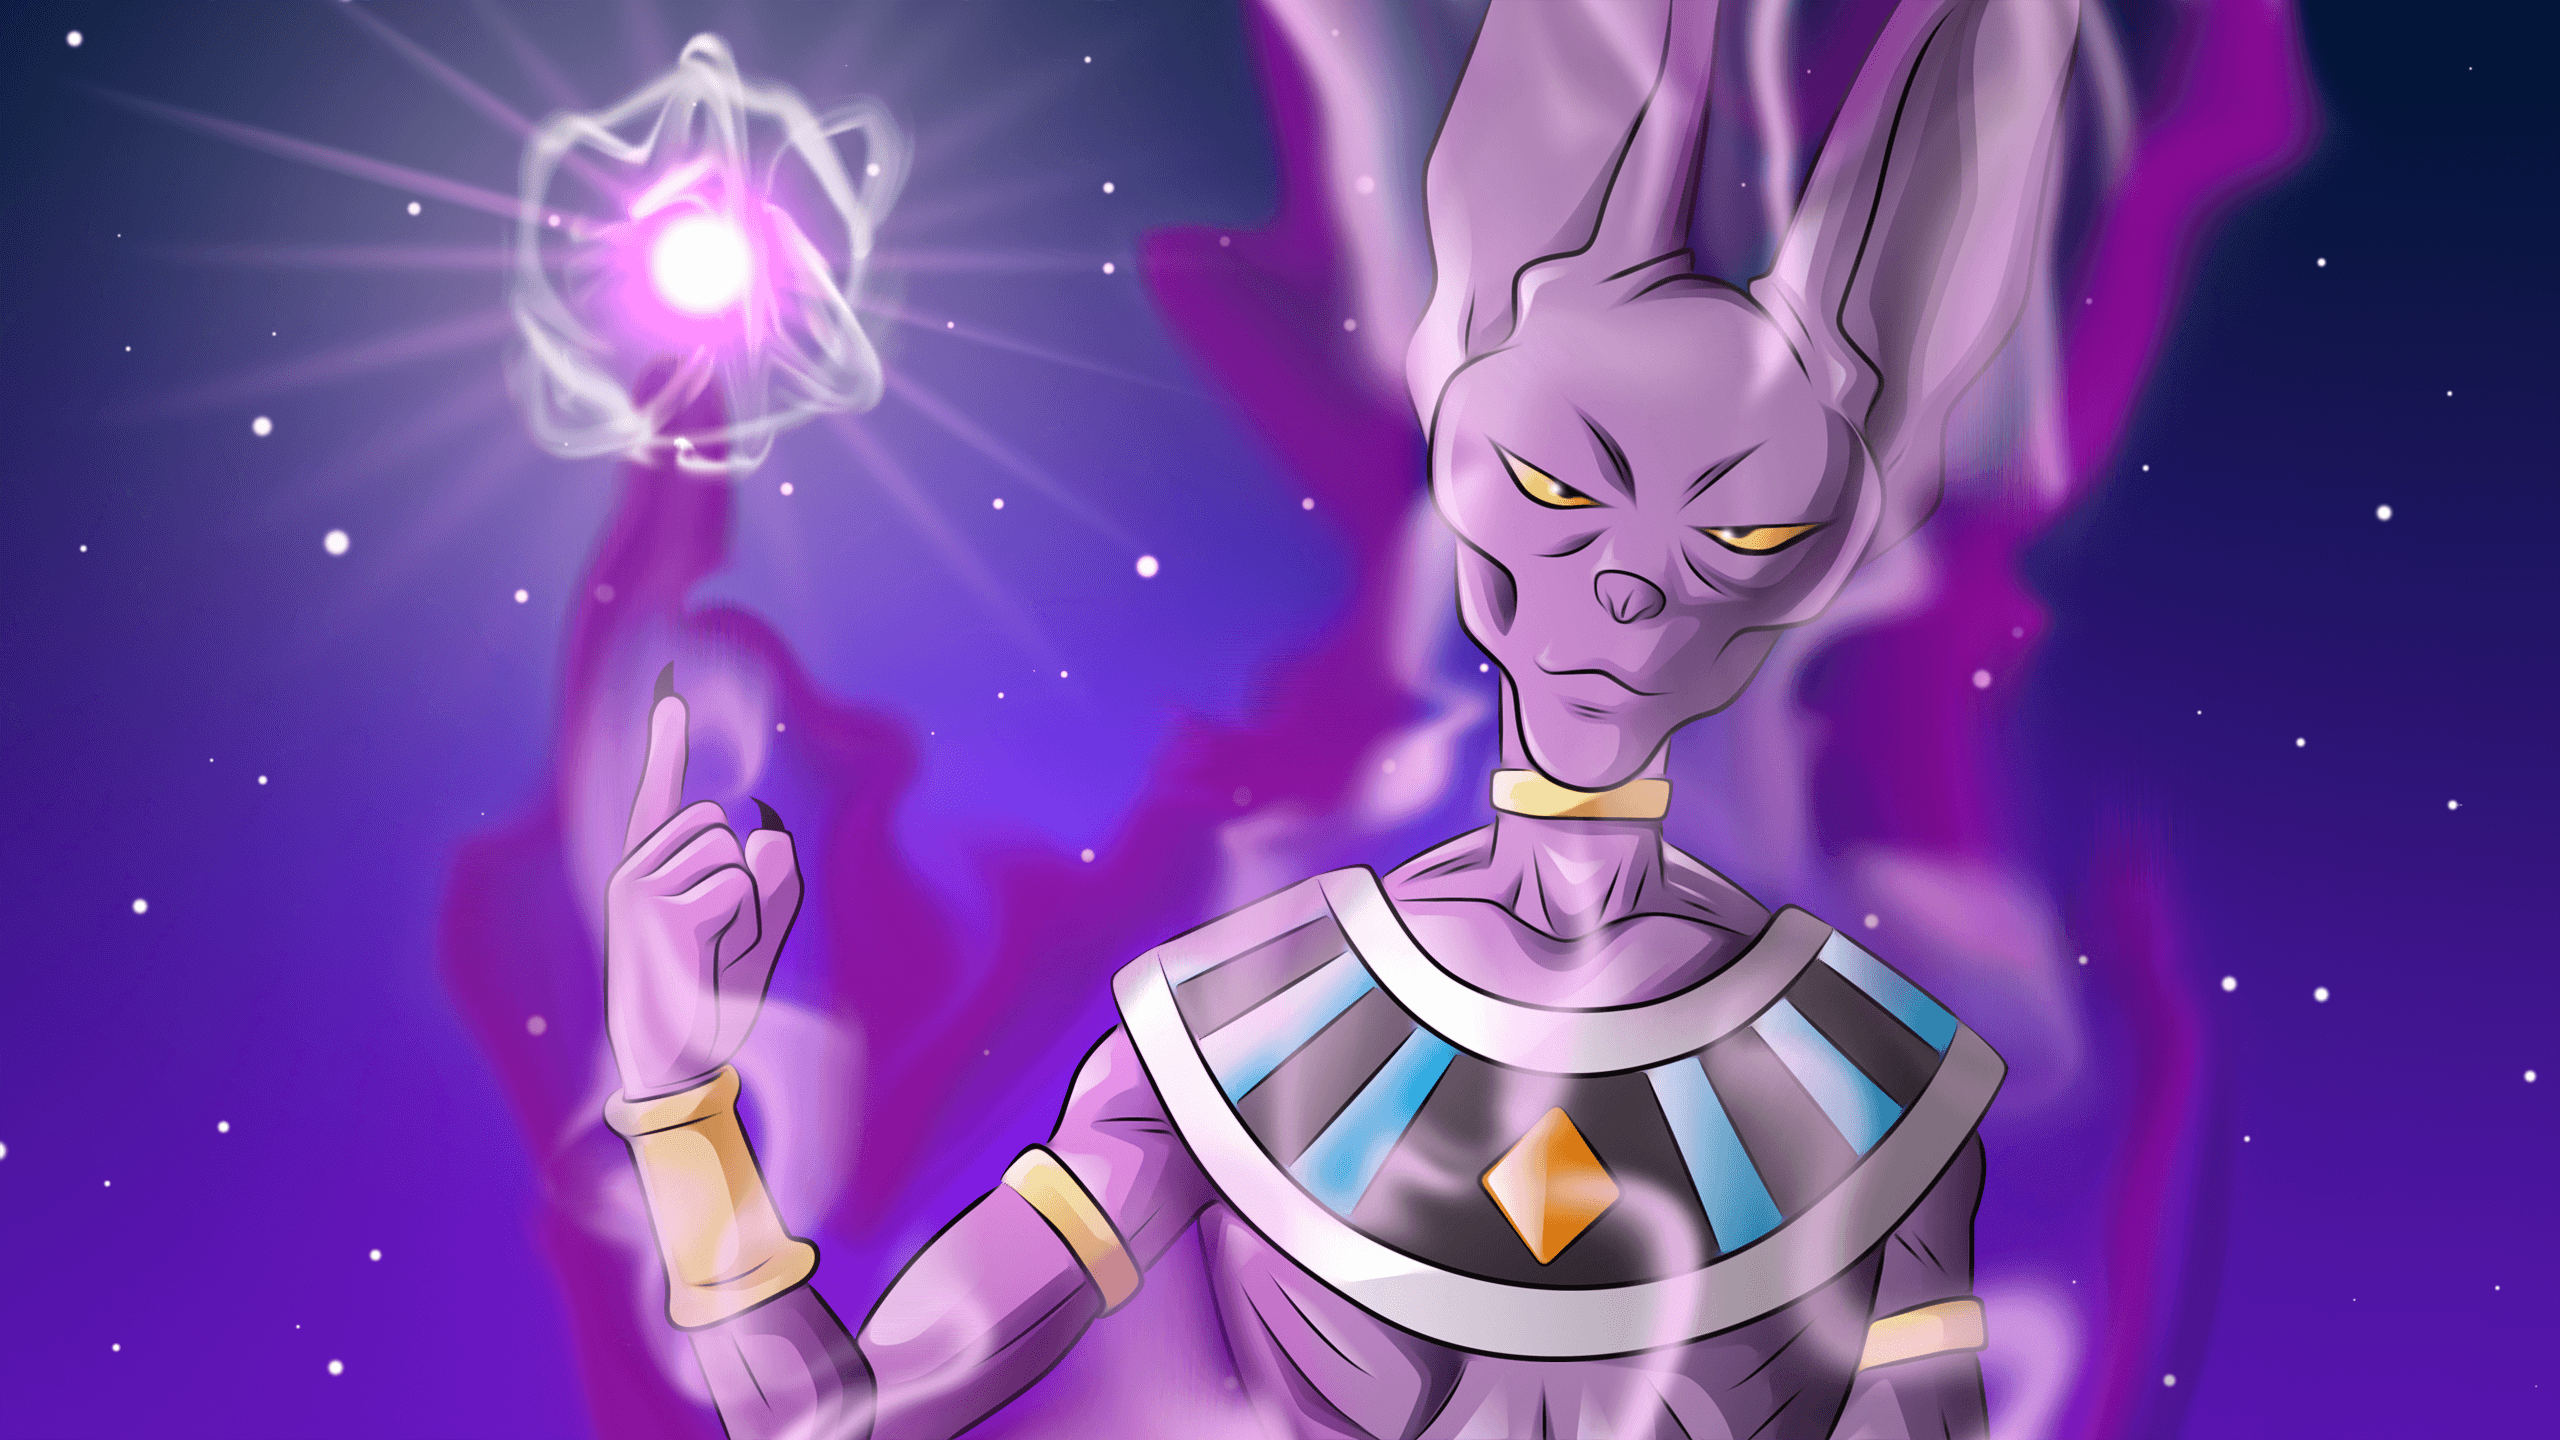 Beerus Wallpapers Top Free Beerus Backgrounds Wallpaperaccess